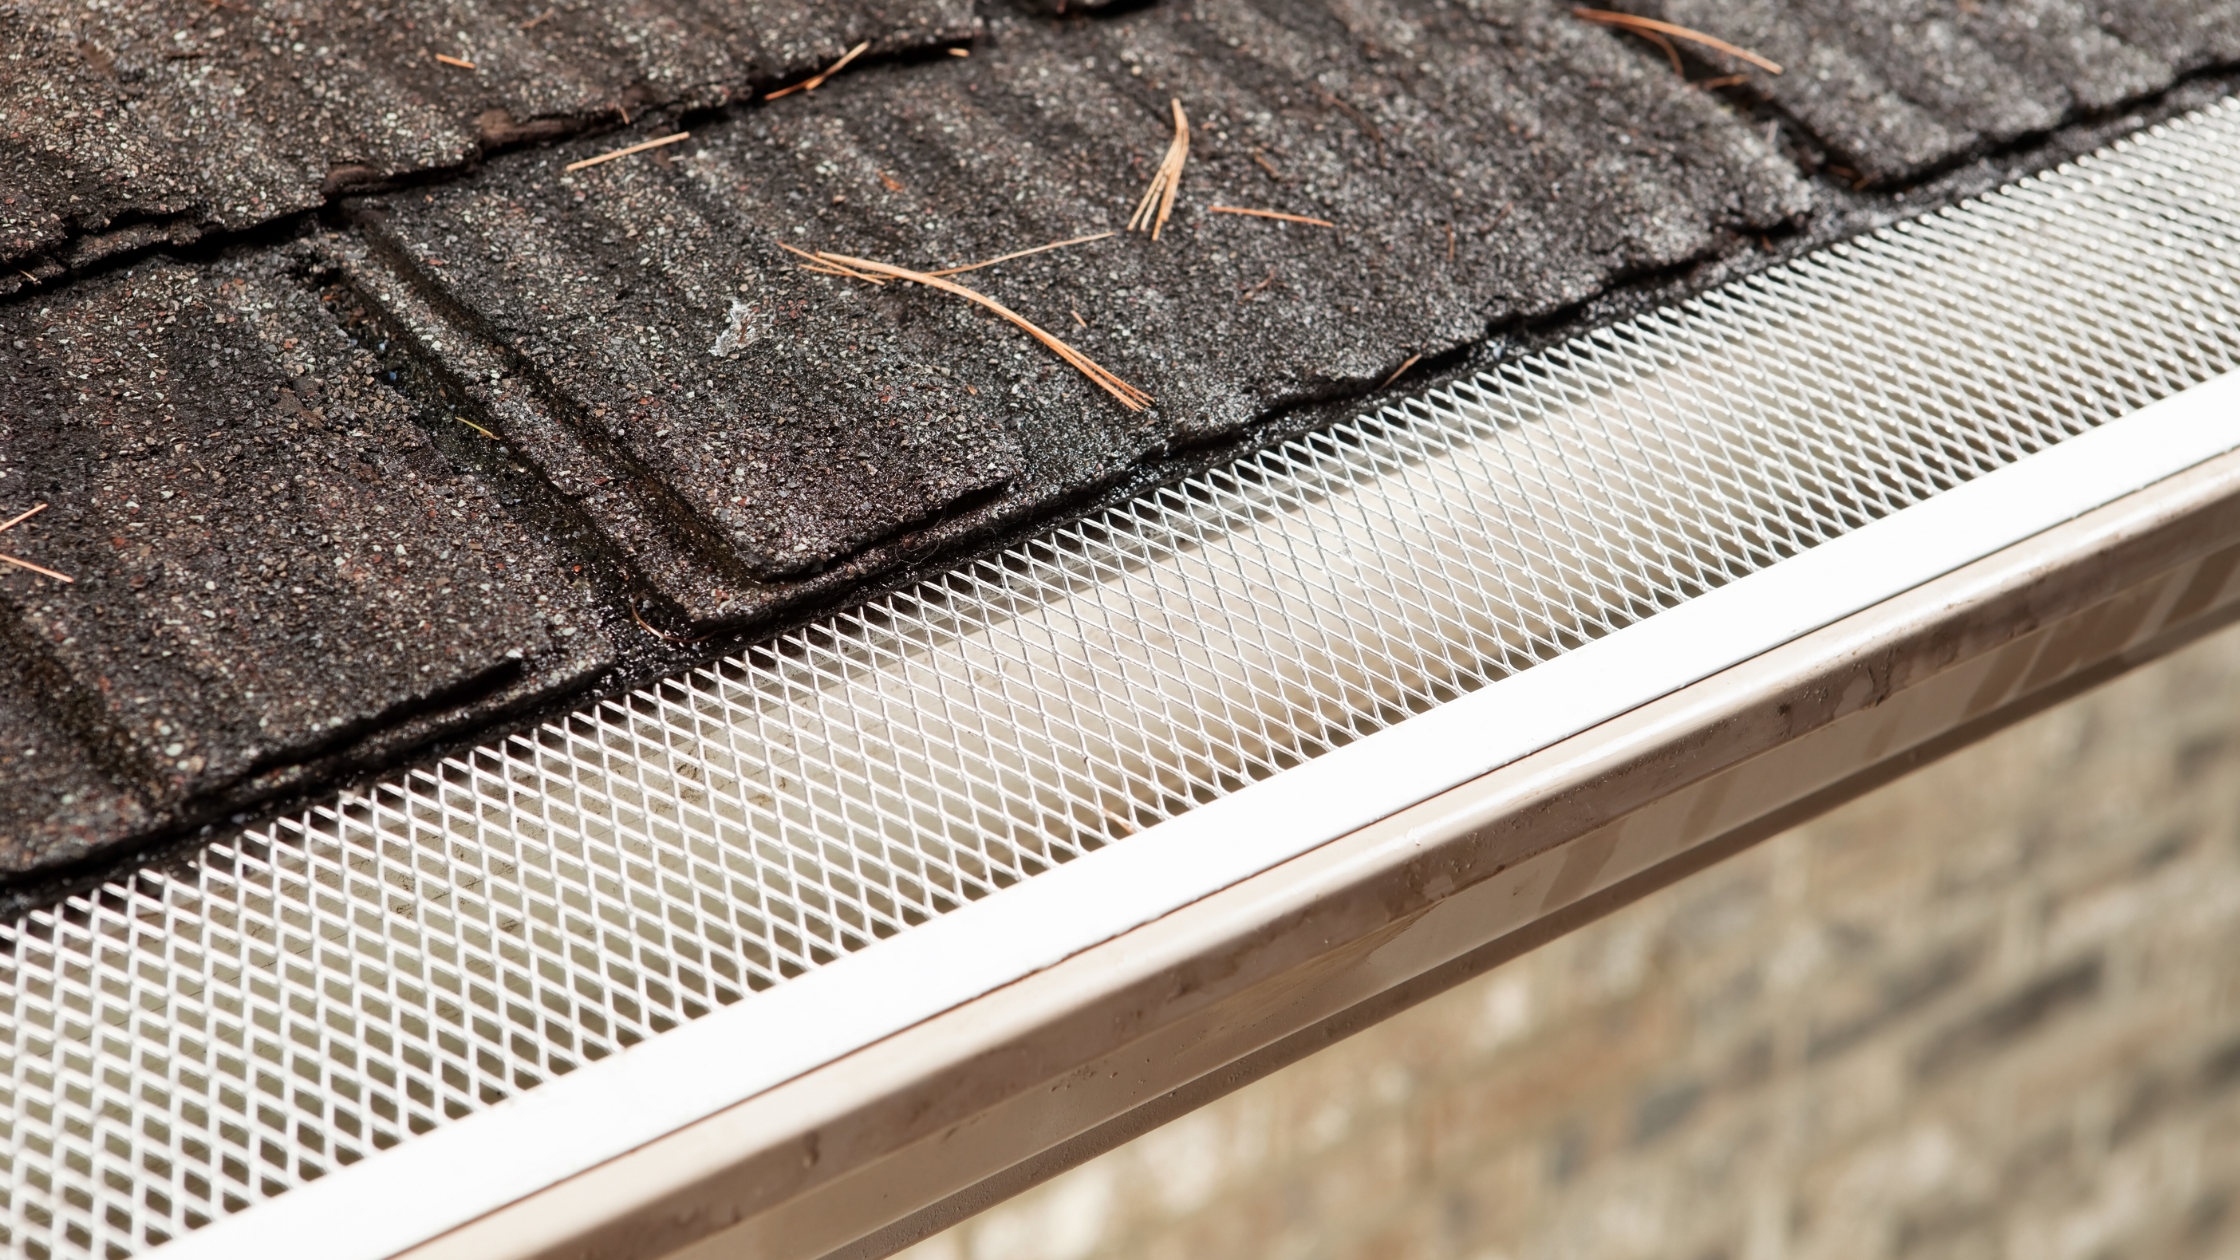 What Is The Best Type of Gutter Guard?